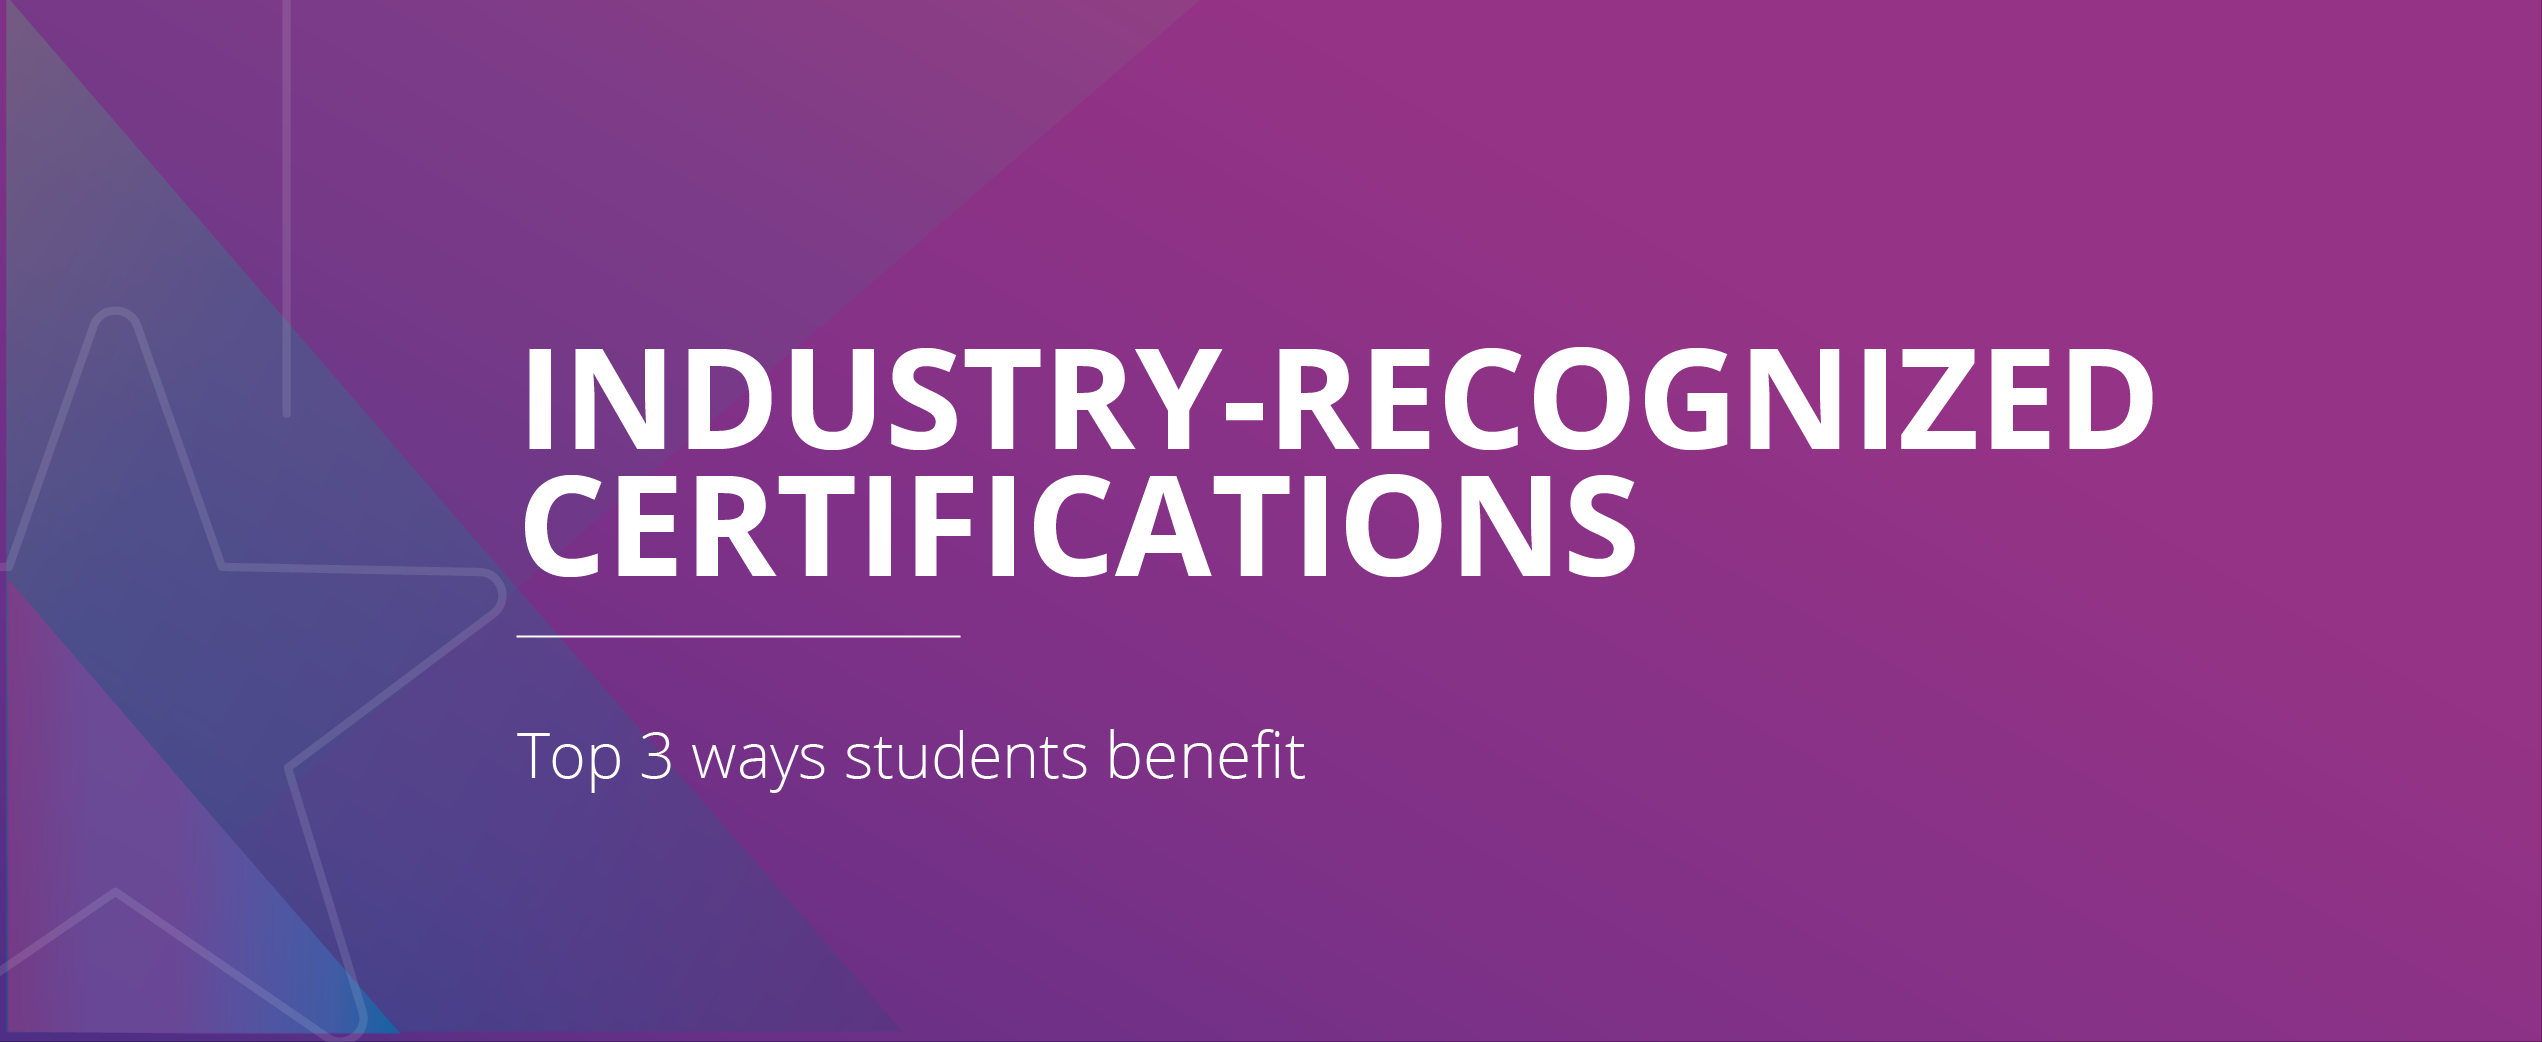 Top 3 ways students benefit from industry-recognized certifications